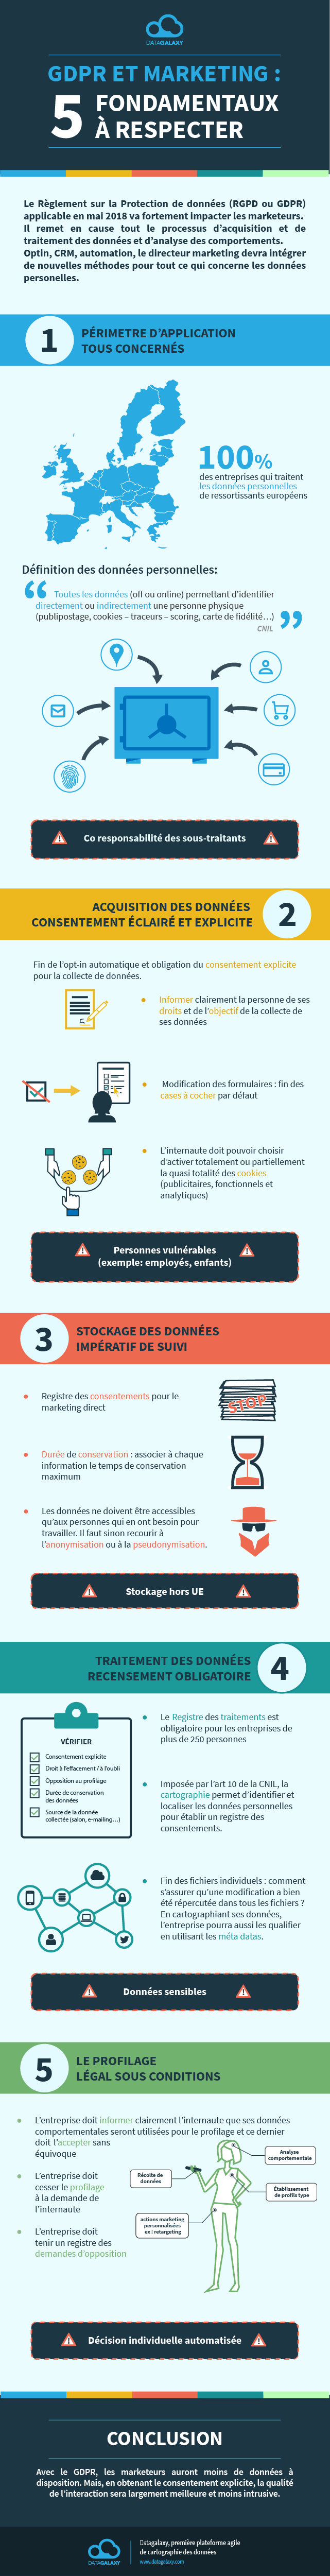 rgpd-cms-infographie-datagalaxy